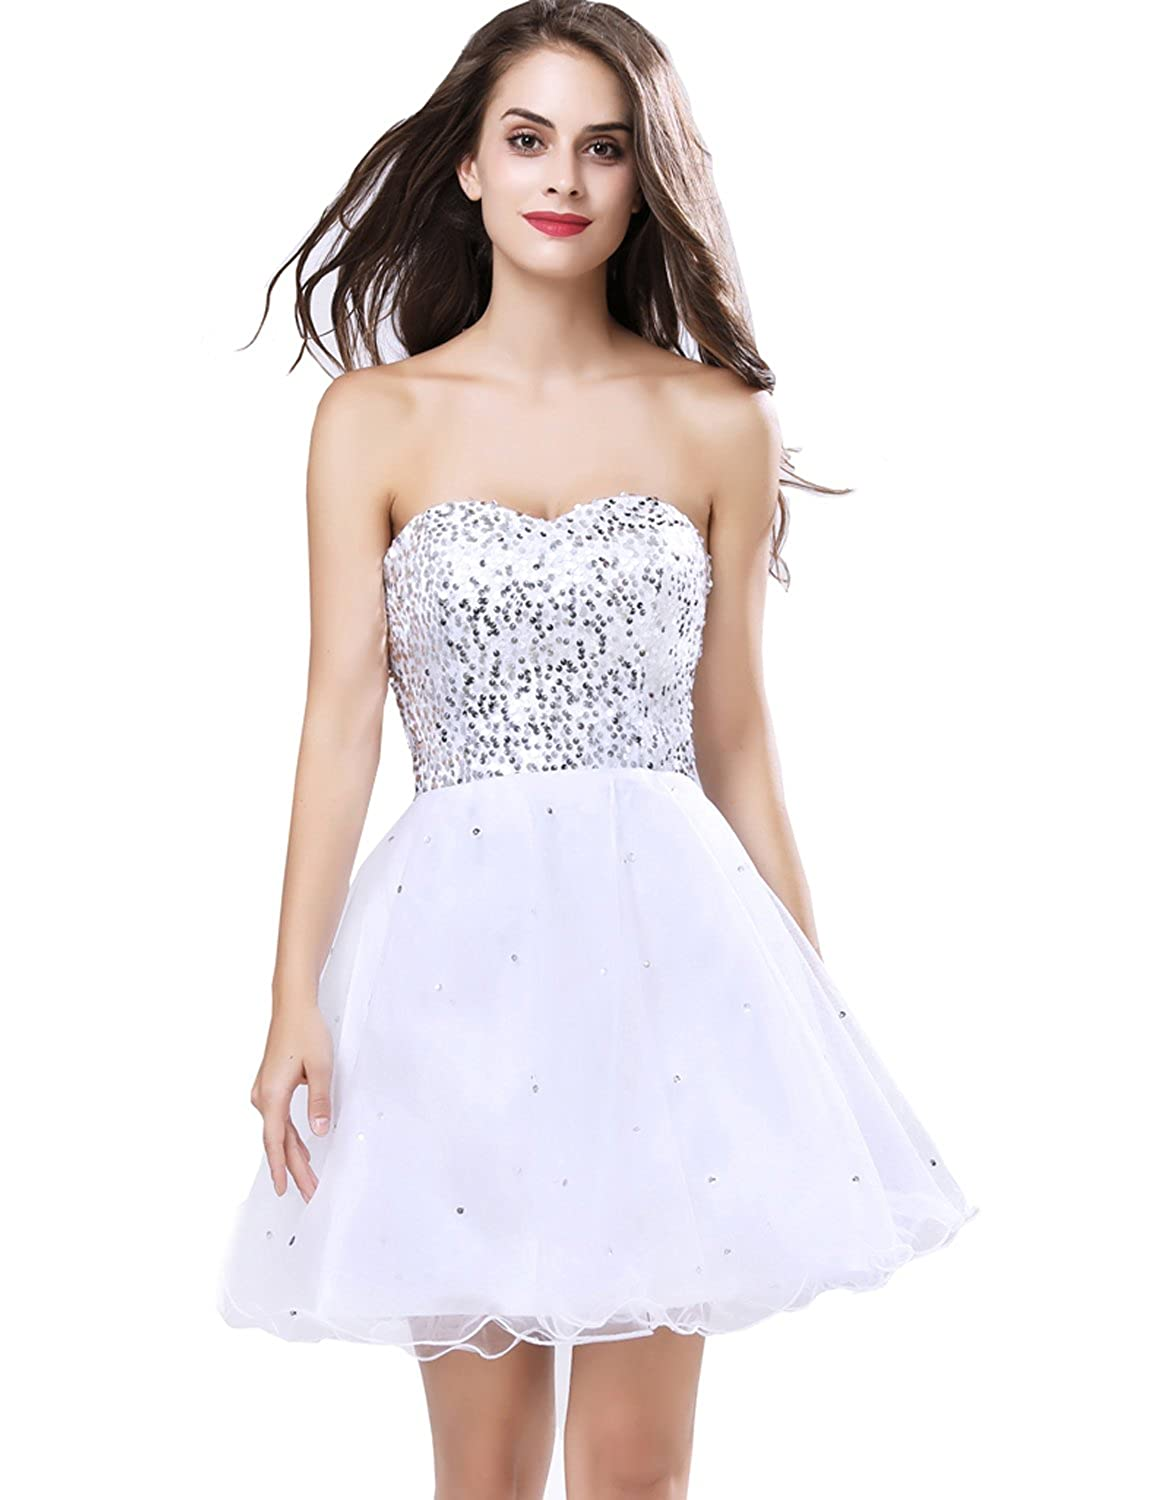 32white Belle House Junior's Lace Short Prom Party Ball Gowns Sweetheart Homecoming Dresses